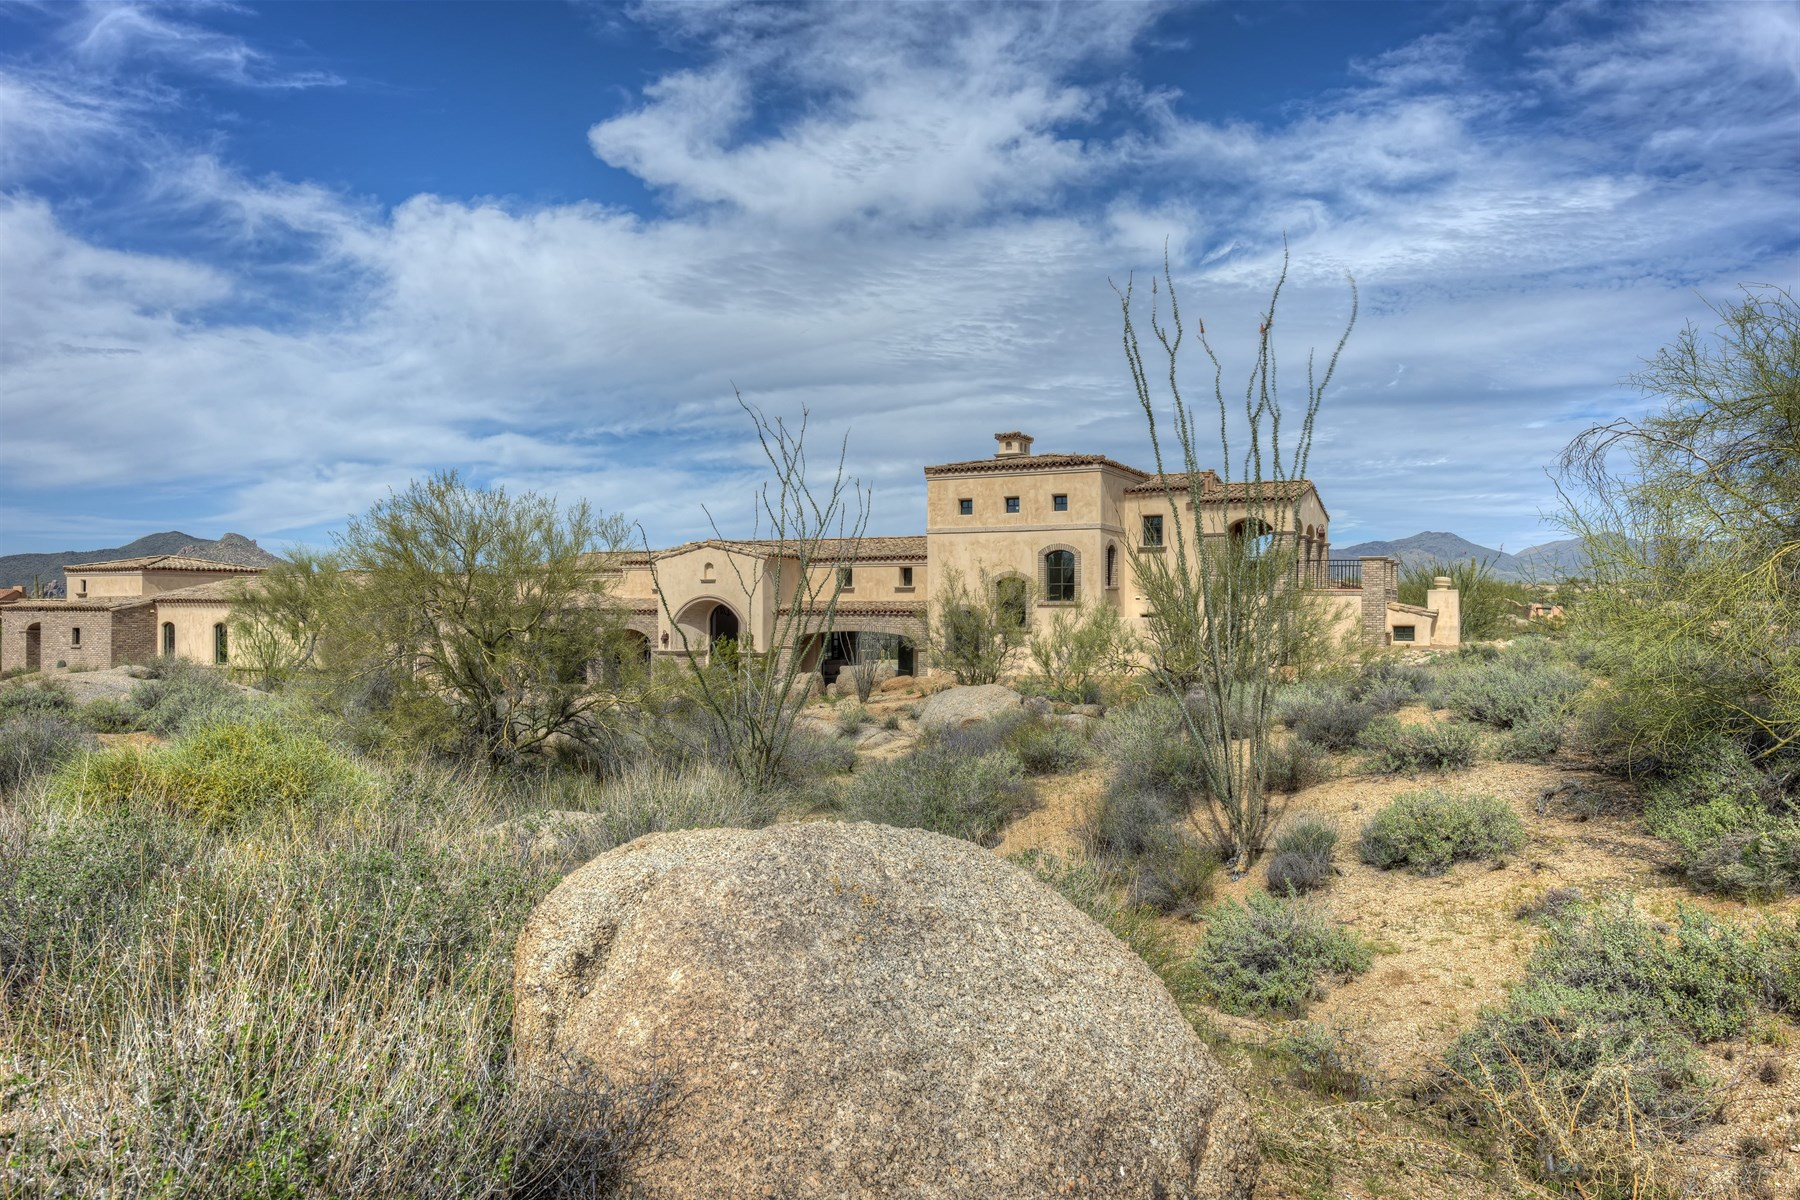 단독 가정 주택 용 매매 에 Rural Mediterranean estate in Whisper Rock 33251 N Solstice Way Scottsdale, 아리조나, 85266 미국